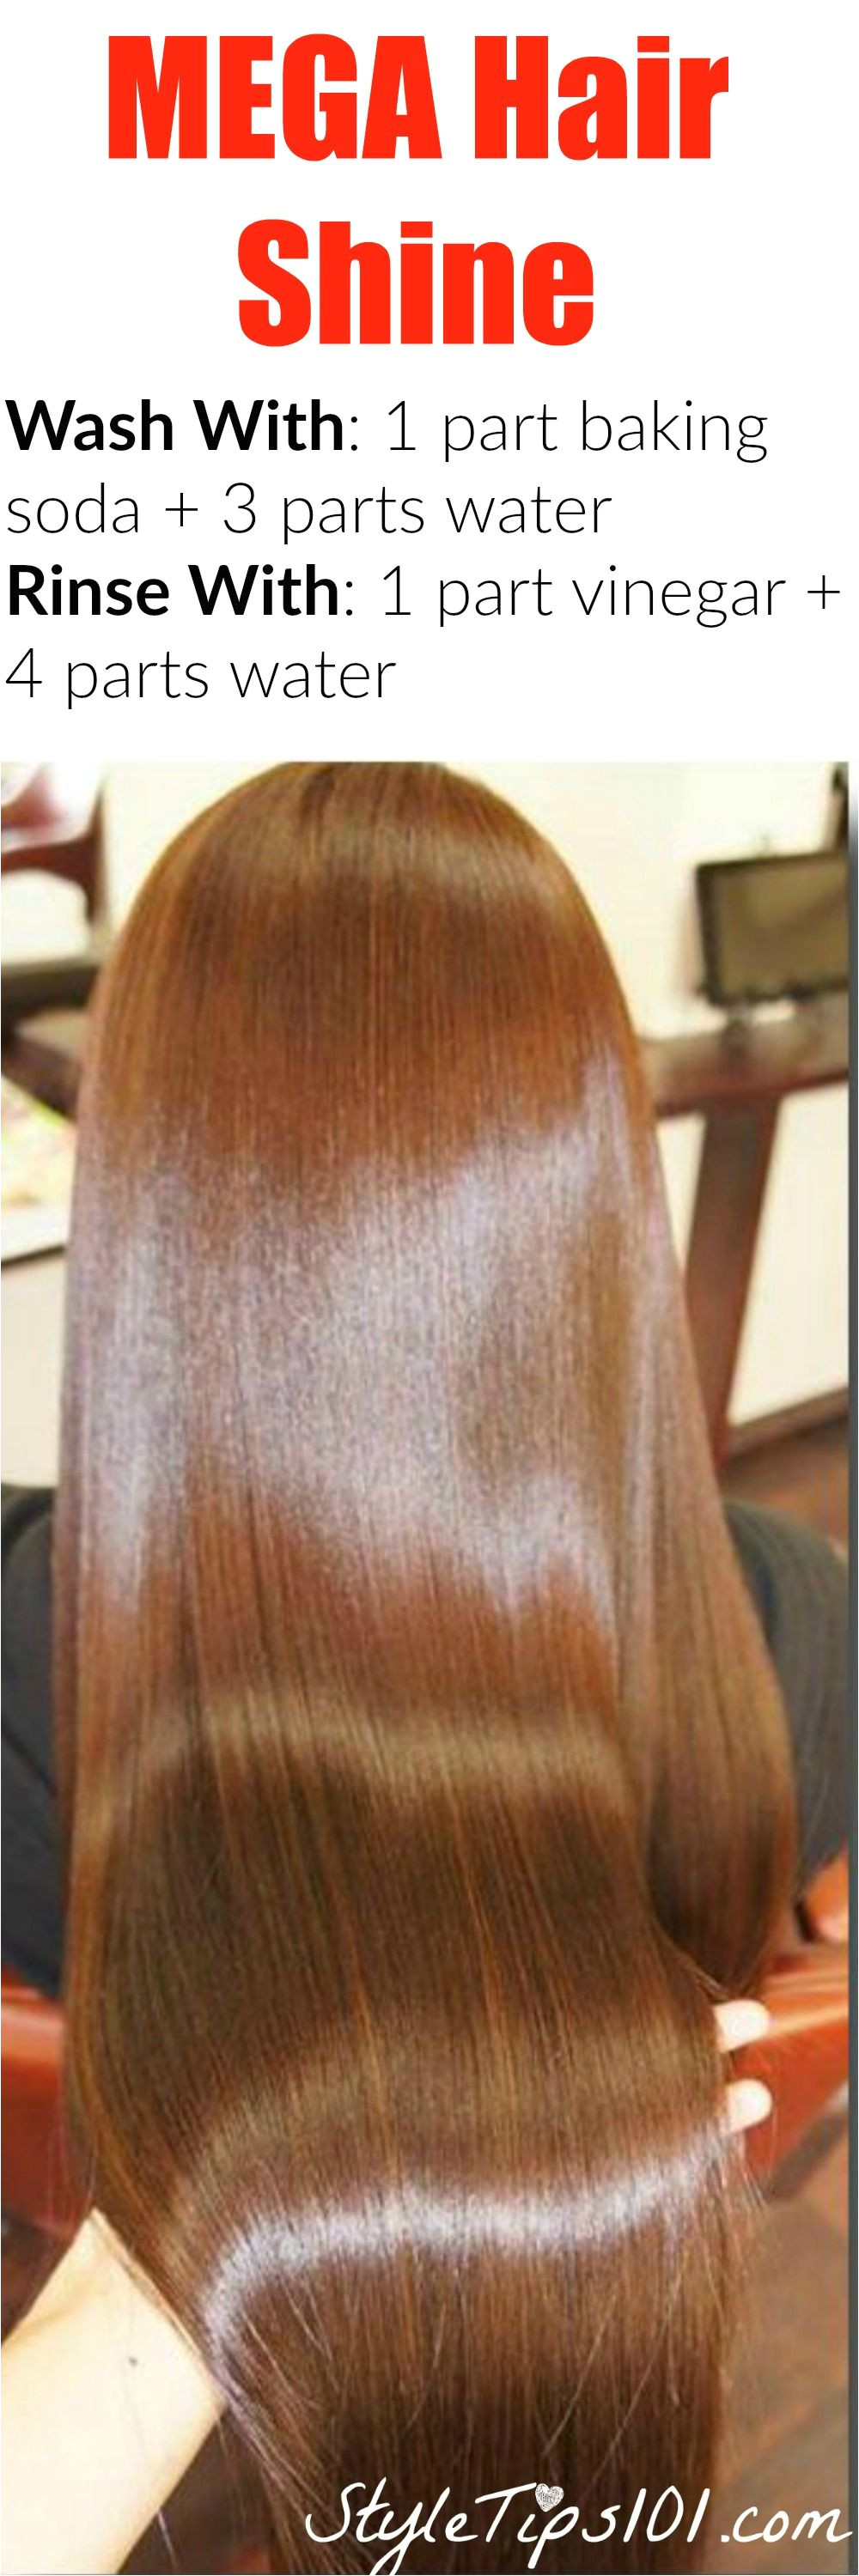 hair care tips make up curly hair styles